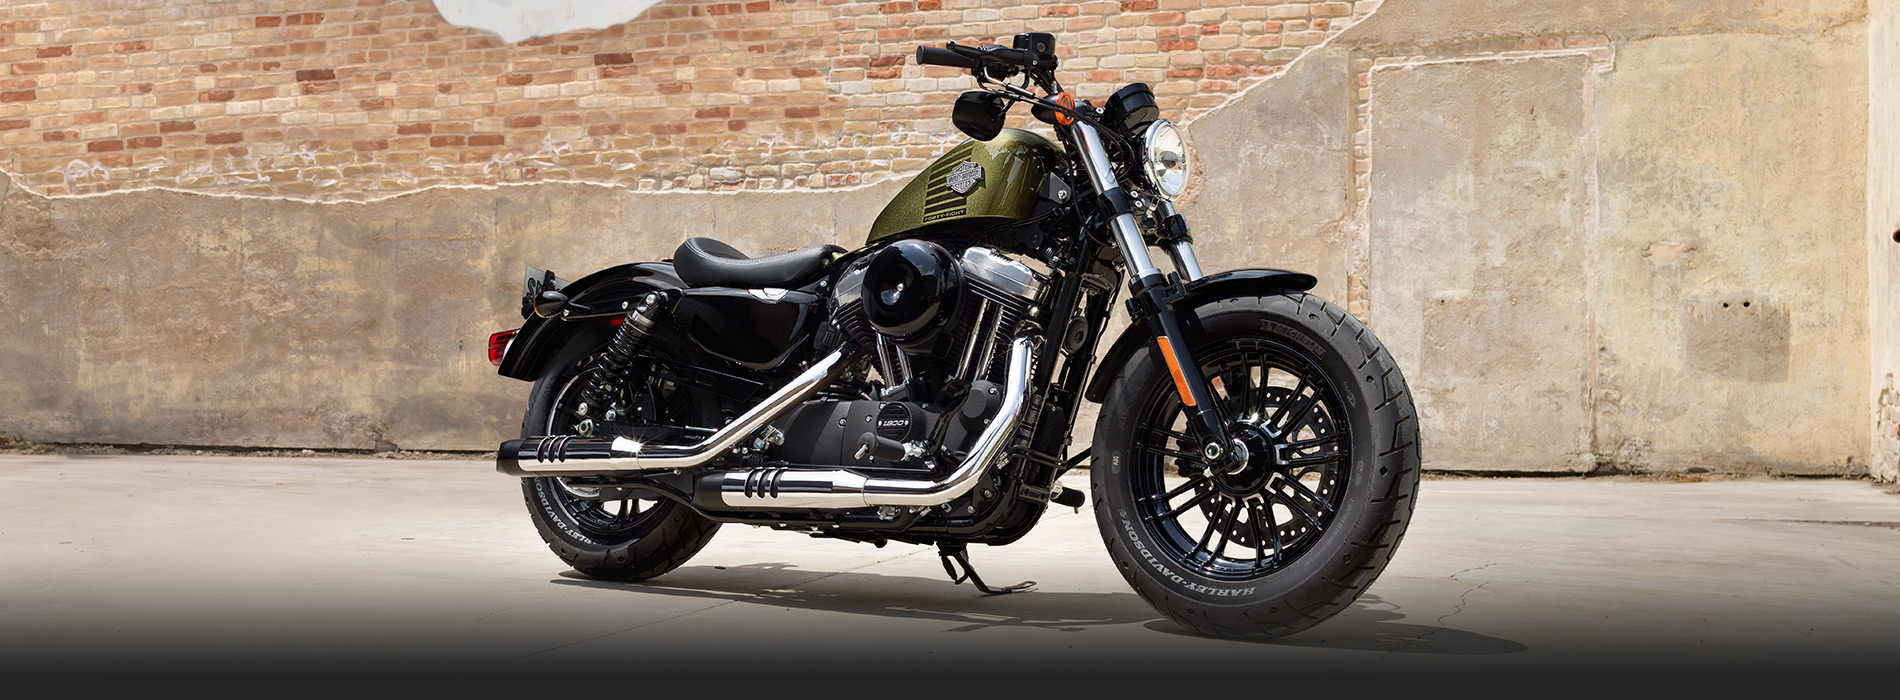 Harley-Davidson XL1200X Forty-Eight 2013 pics #20513